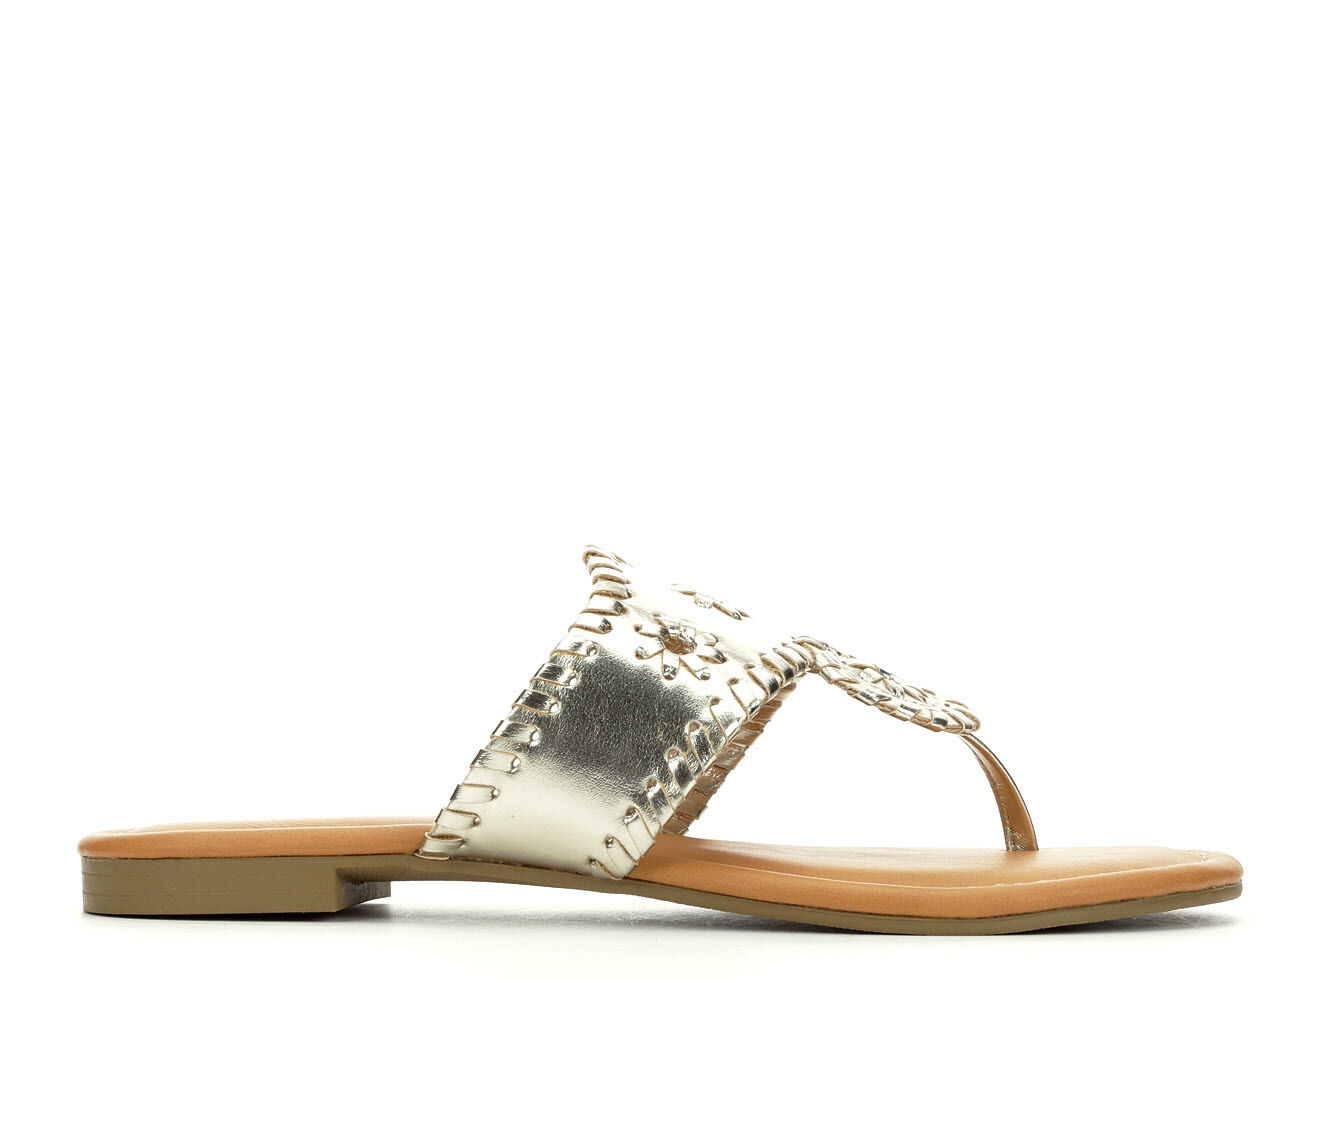 purchase export Women's Y-Not Crissy Flip-Flops Light Gold